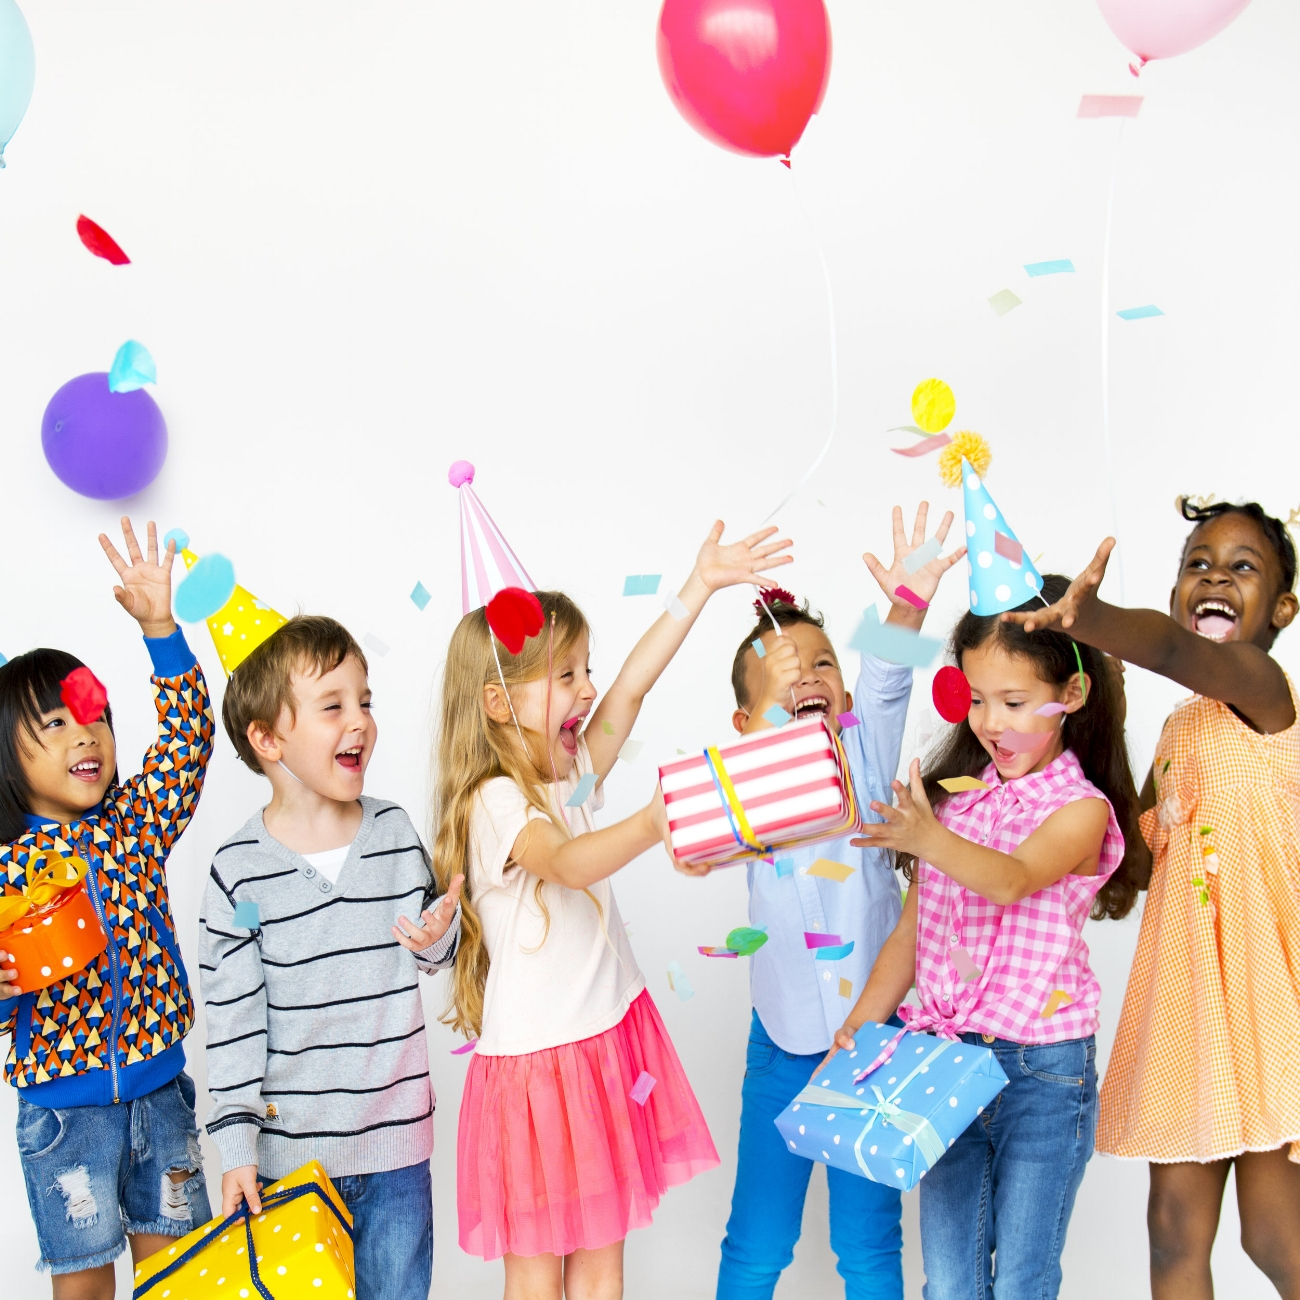 Book a Birthday Party Now! - Book an awesome Birthday Party at the ONLY Inflatable Theme Park in the West Midlands!Learn more ➝